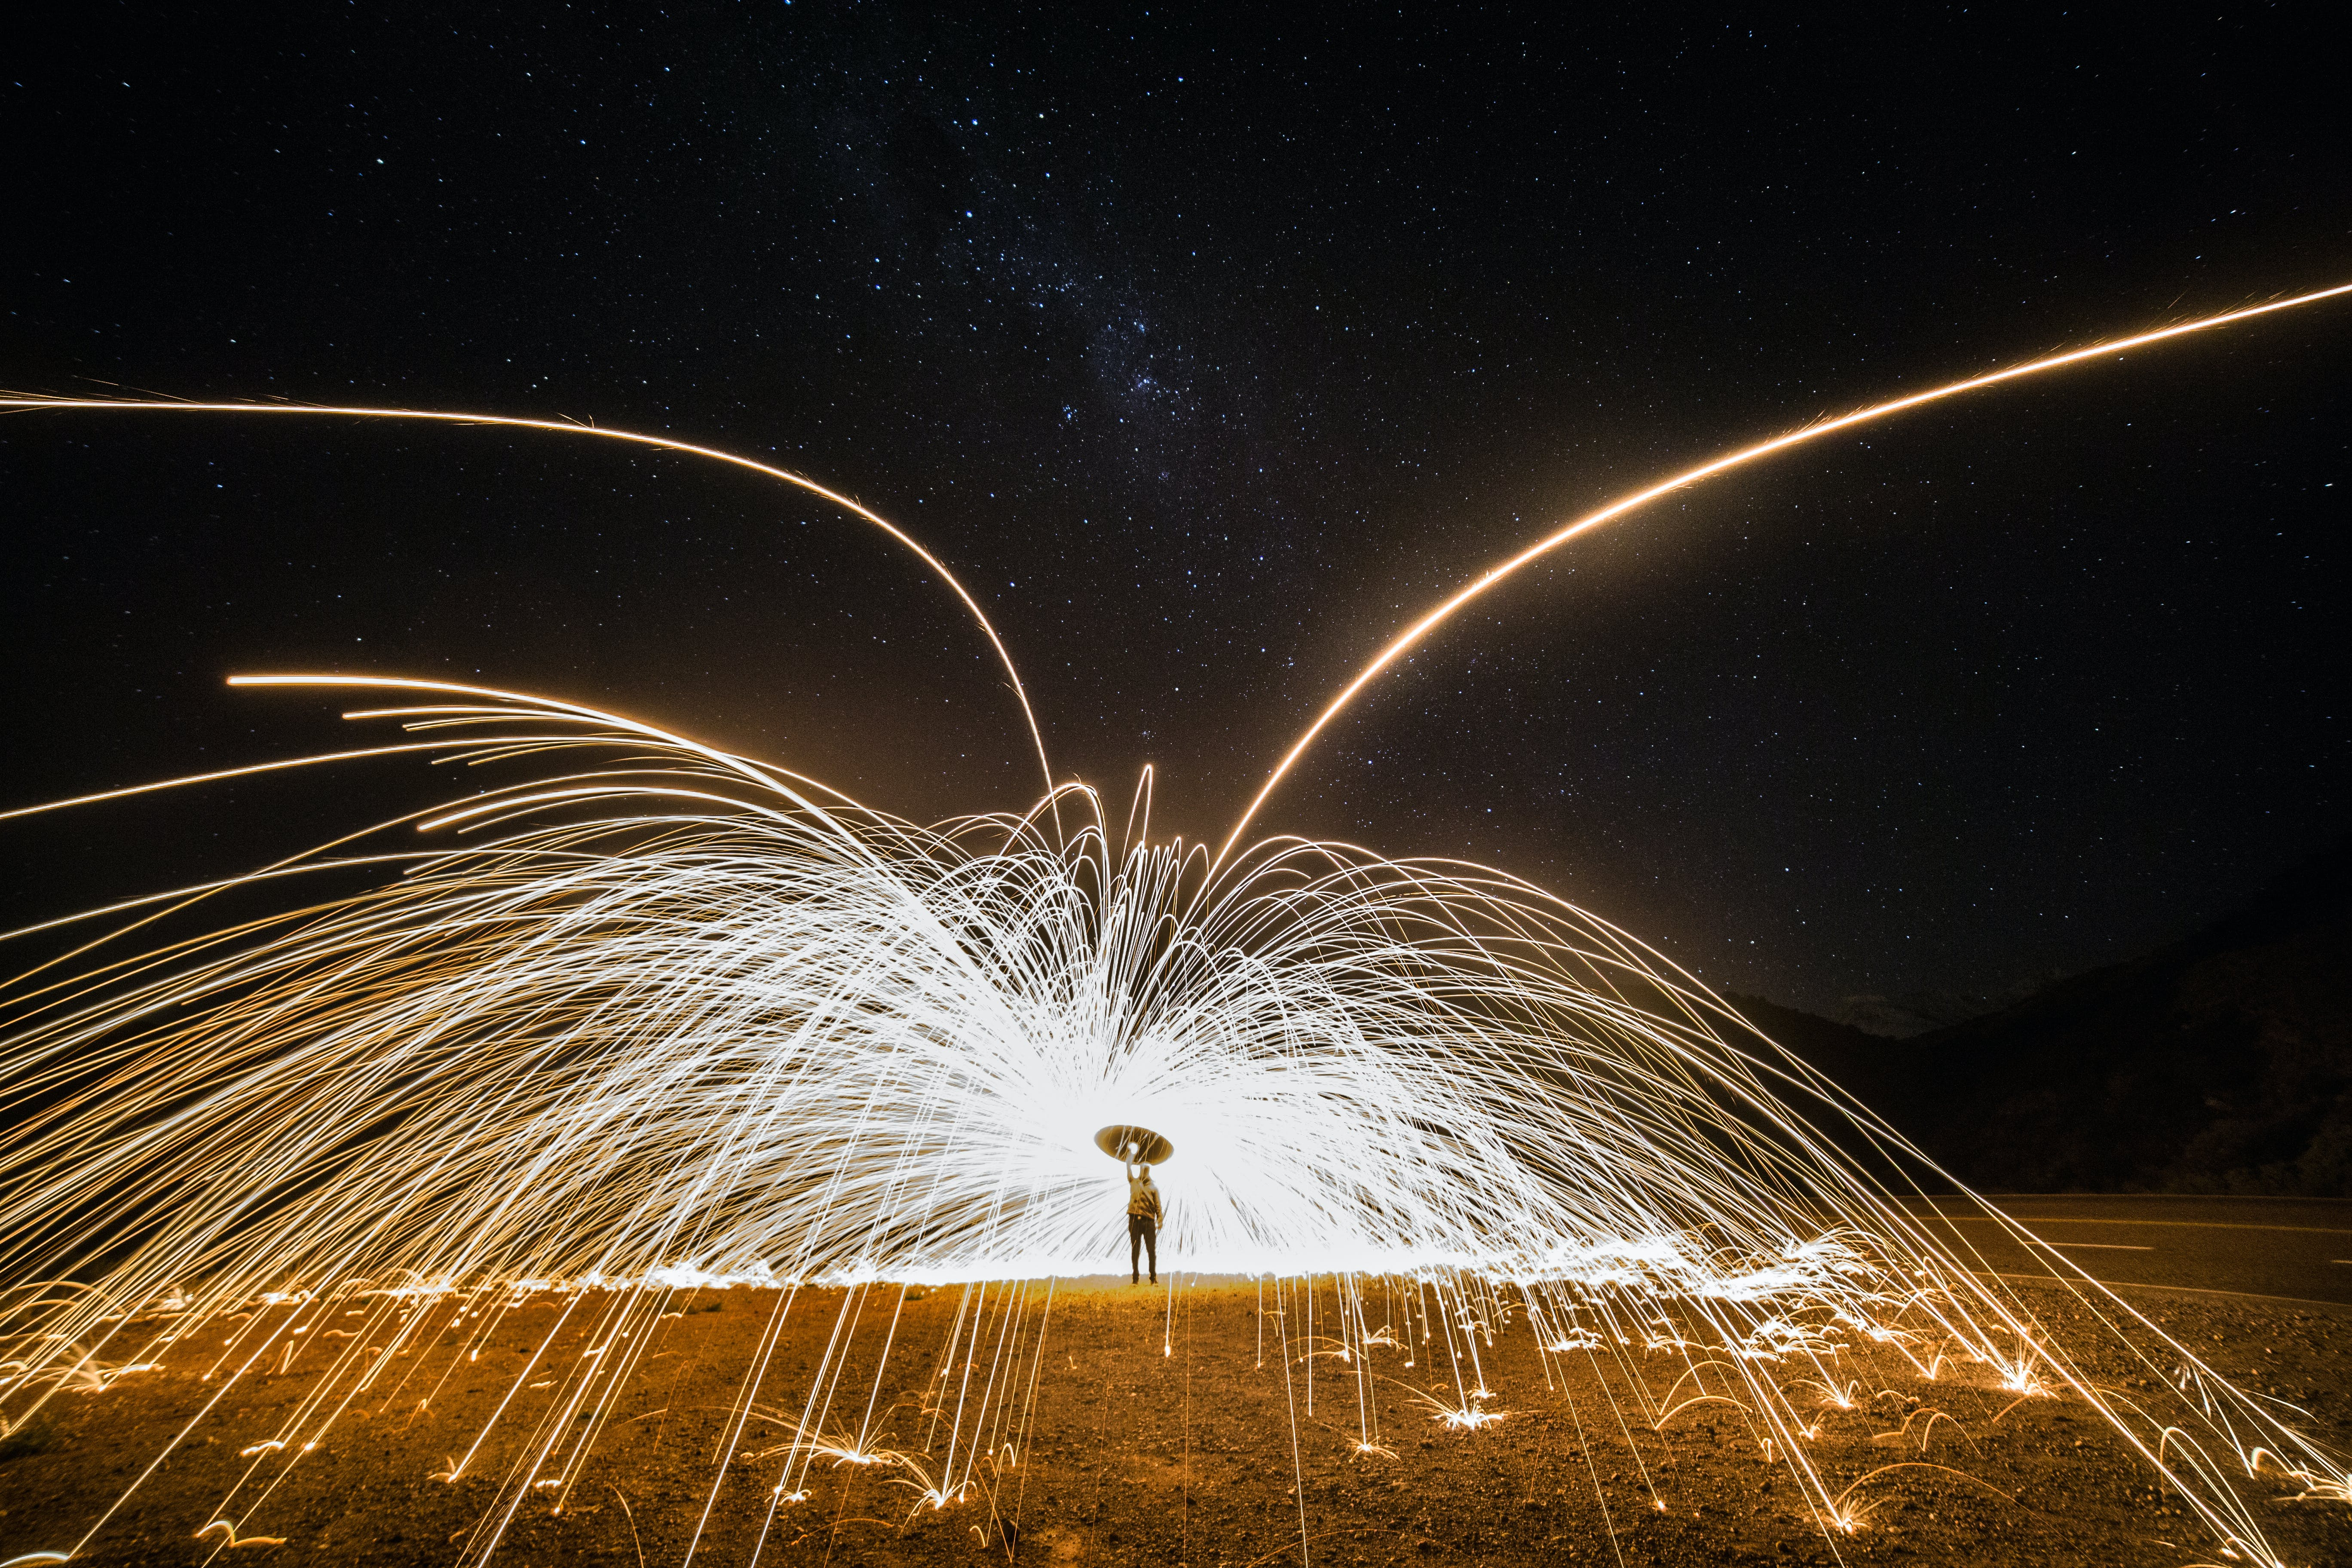 Wool Photography of Person Doing Fire Dancing